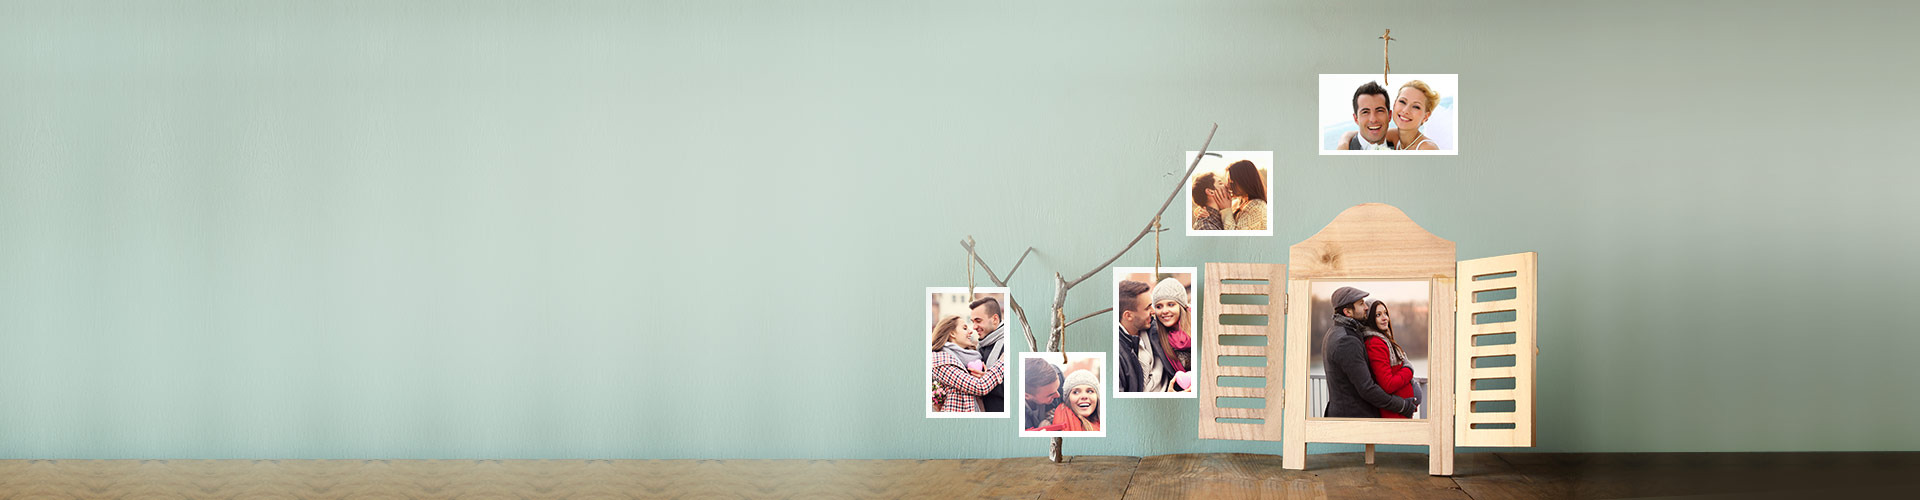 Professional quality photo prints from the most trusted brand